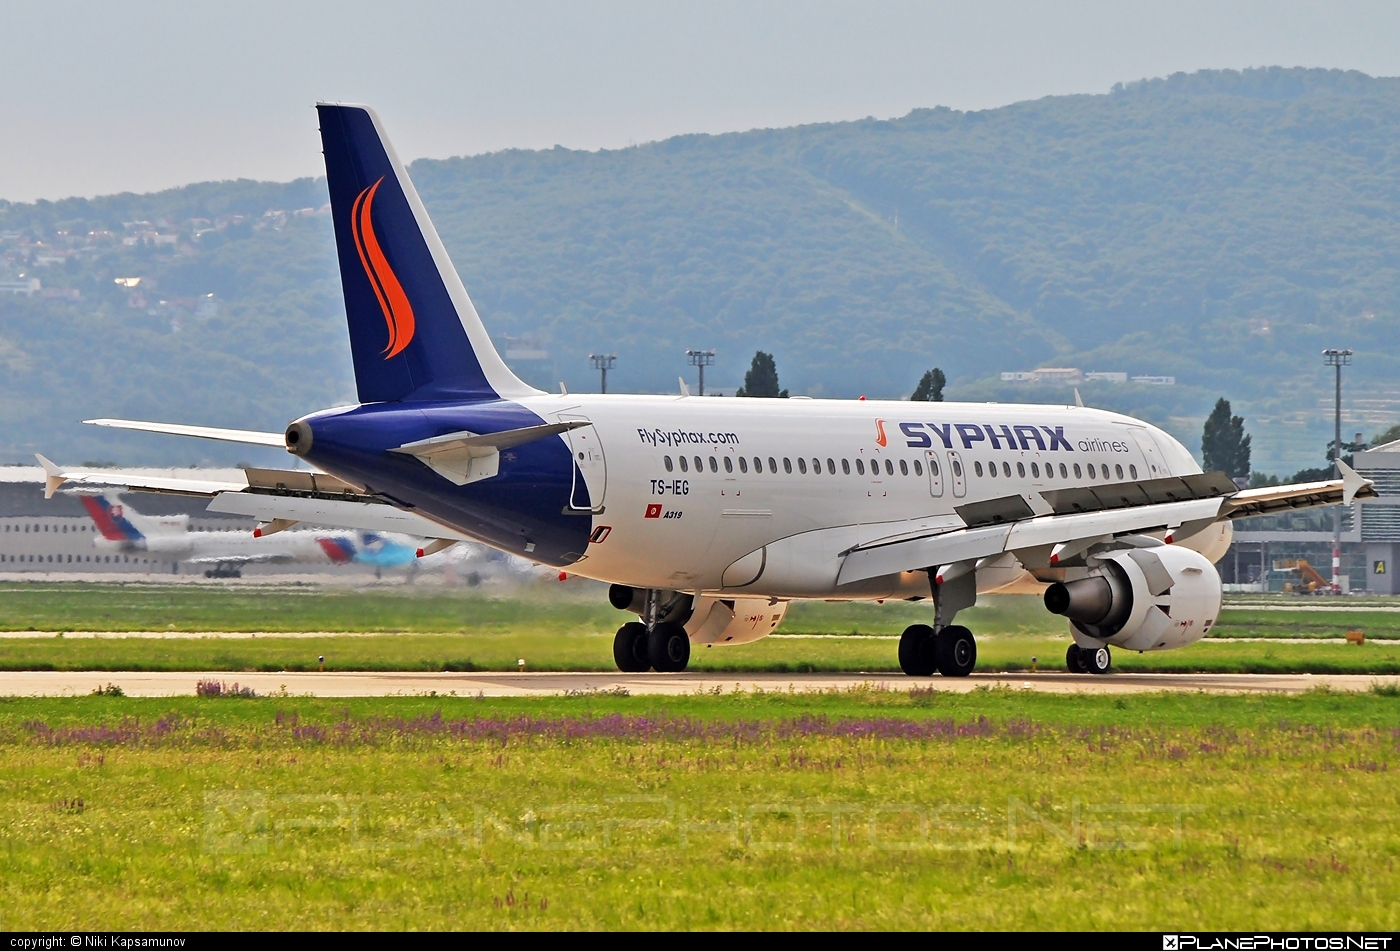 Airbus A319-112 - TS-IEG operated by Syphax Airlines #a319 #a320family #airbus #airbus319